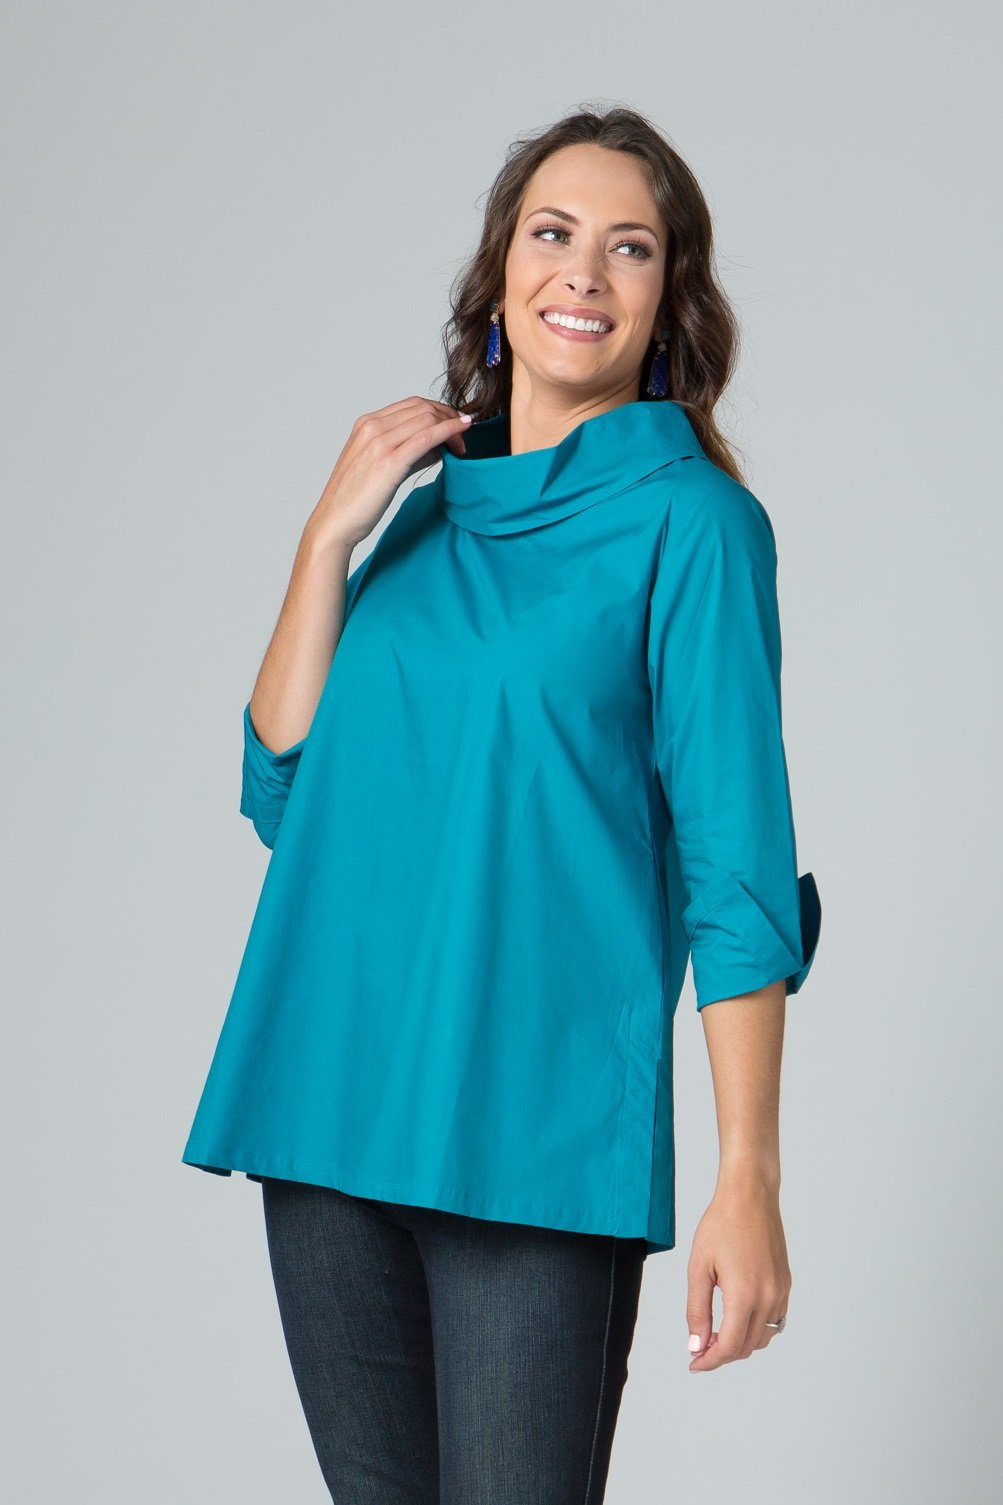 Back Split Cowl Neck Tunic with Back Buttons Details - Amélline - Tops - Blouses